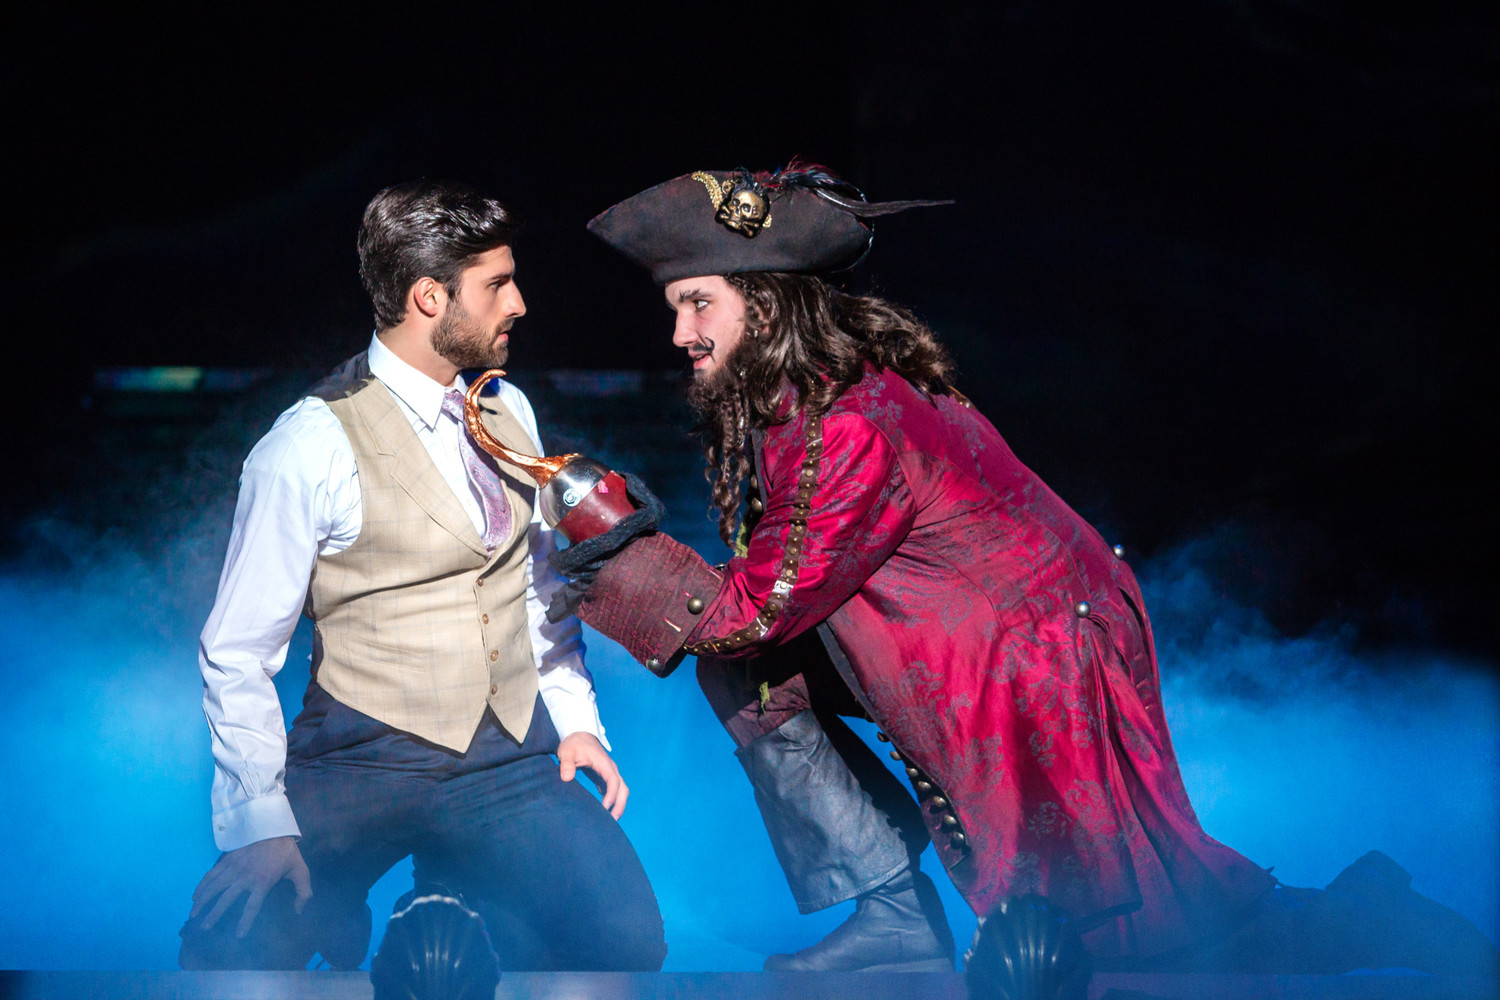 BWW Review: Fly High With Imagination in FINDING NEVERLAND at BJCC Concert Hall